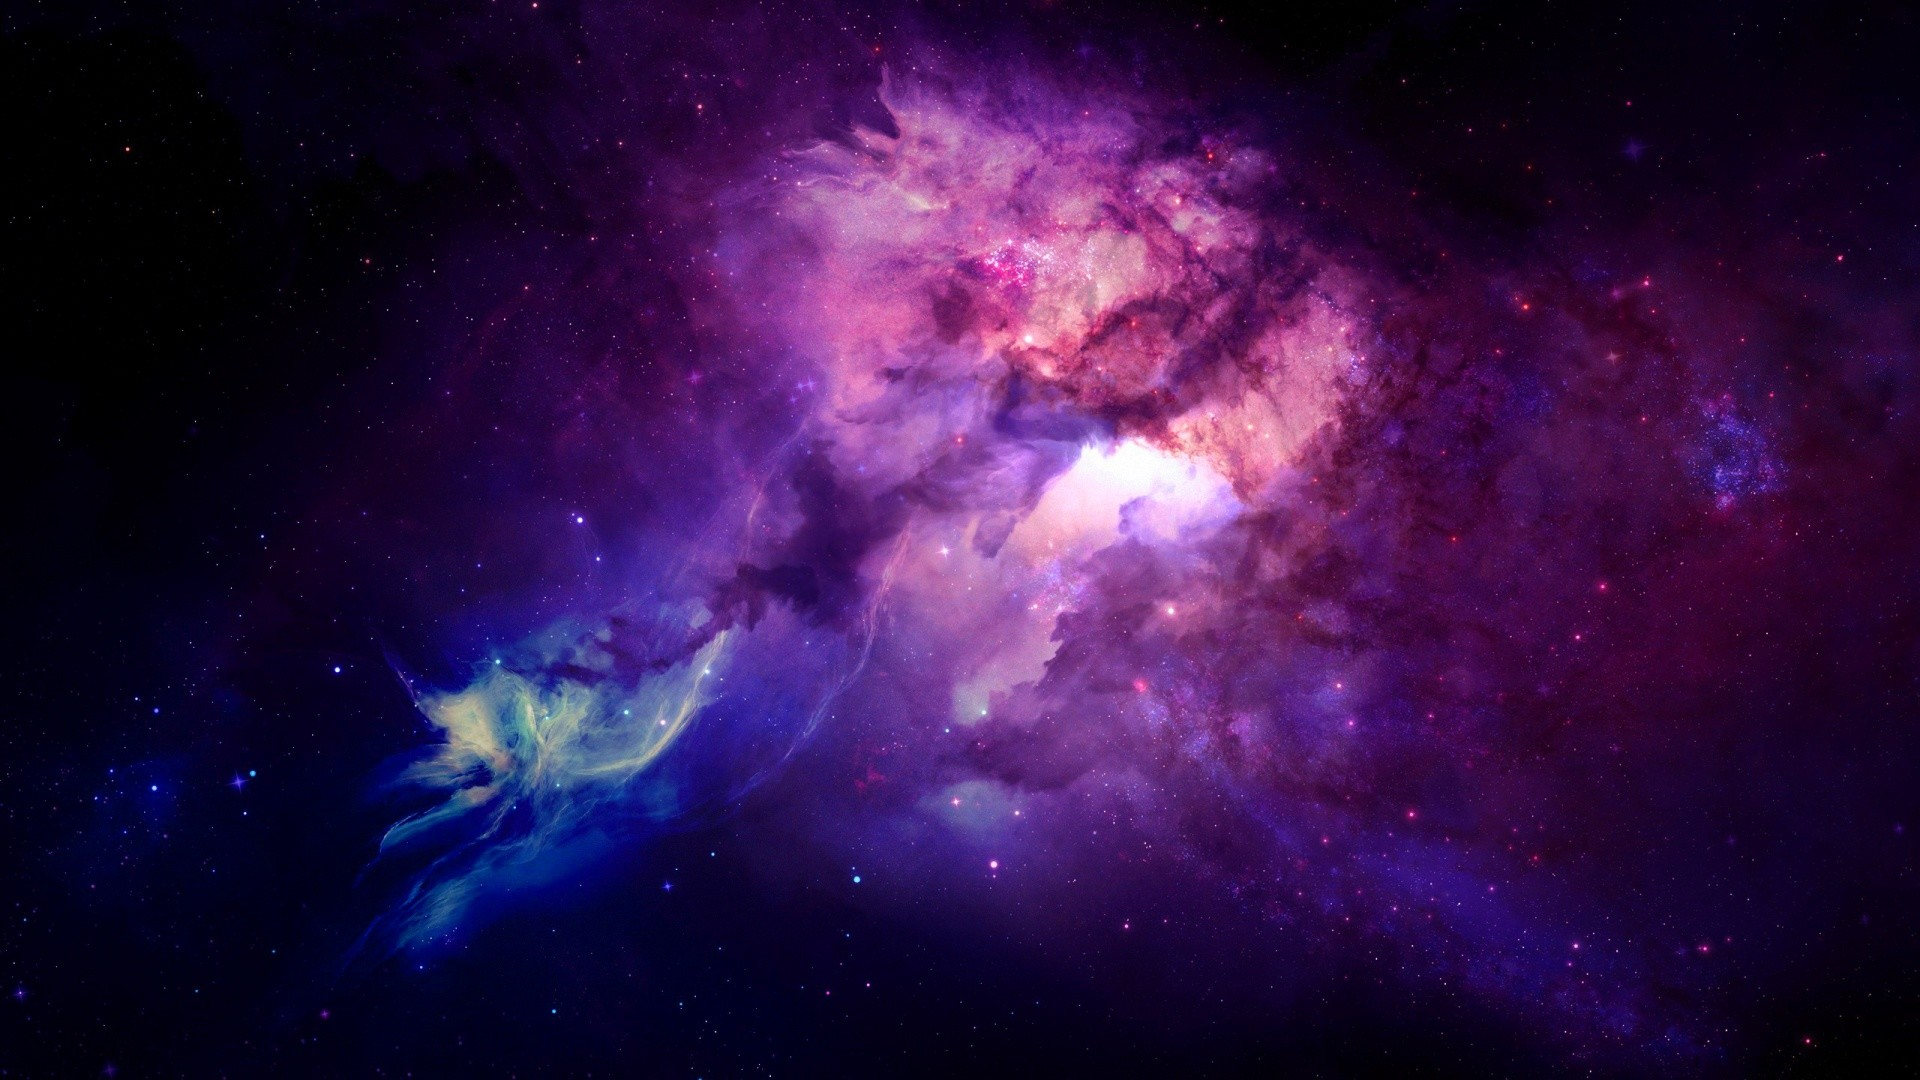 Space wallpapers 1920x1080 85 images - Nasa space wallpaper 1920x1080 ...